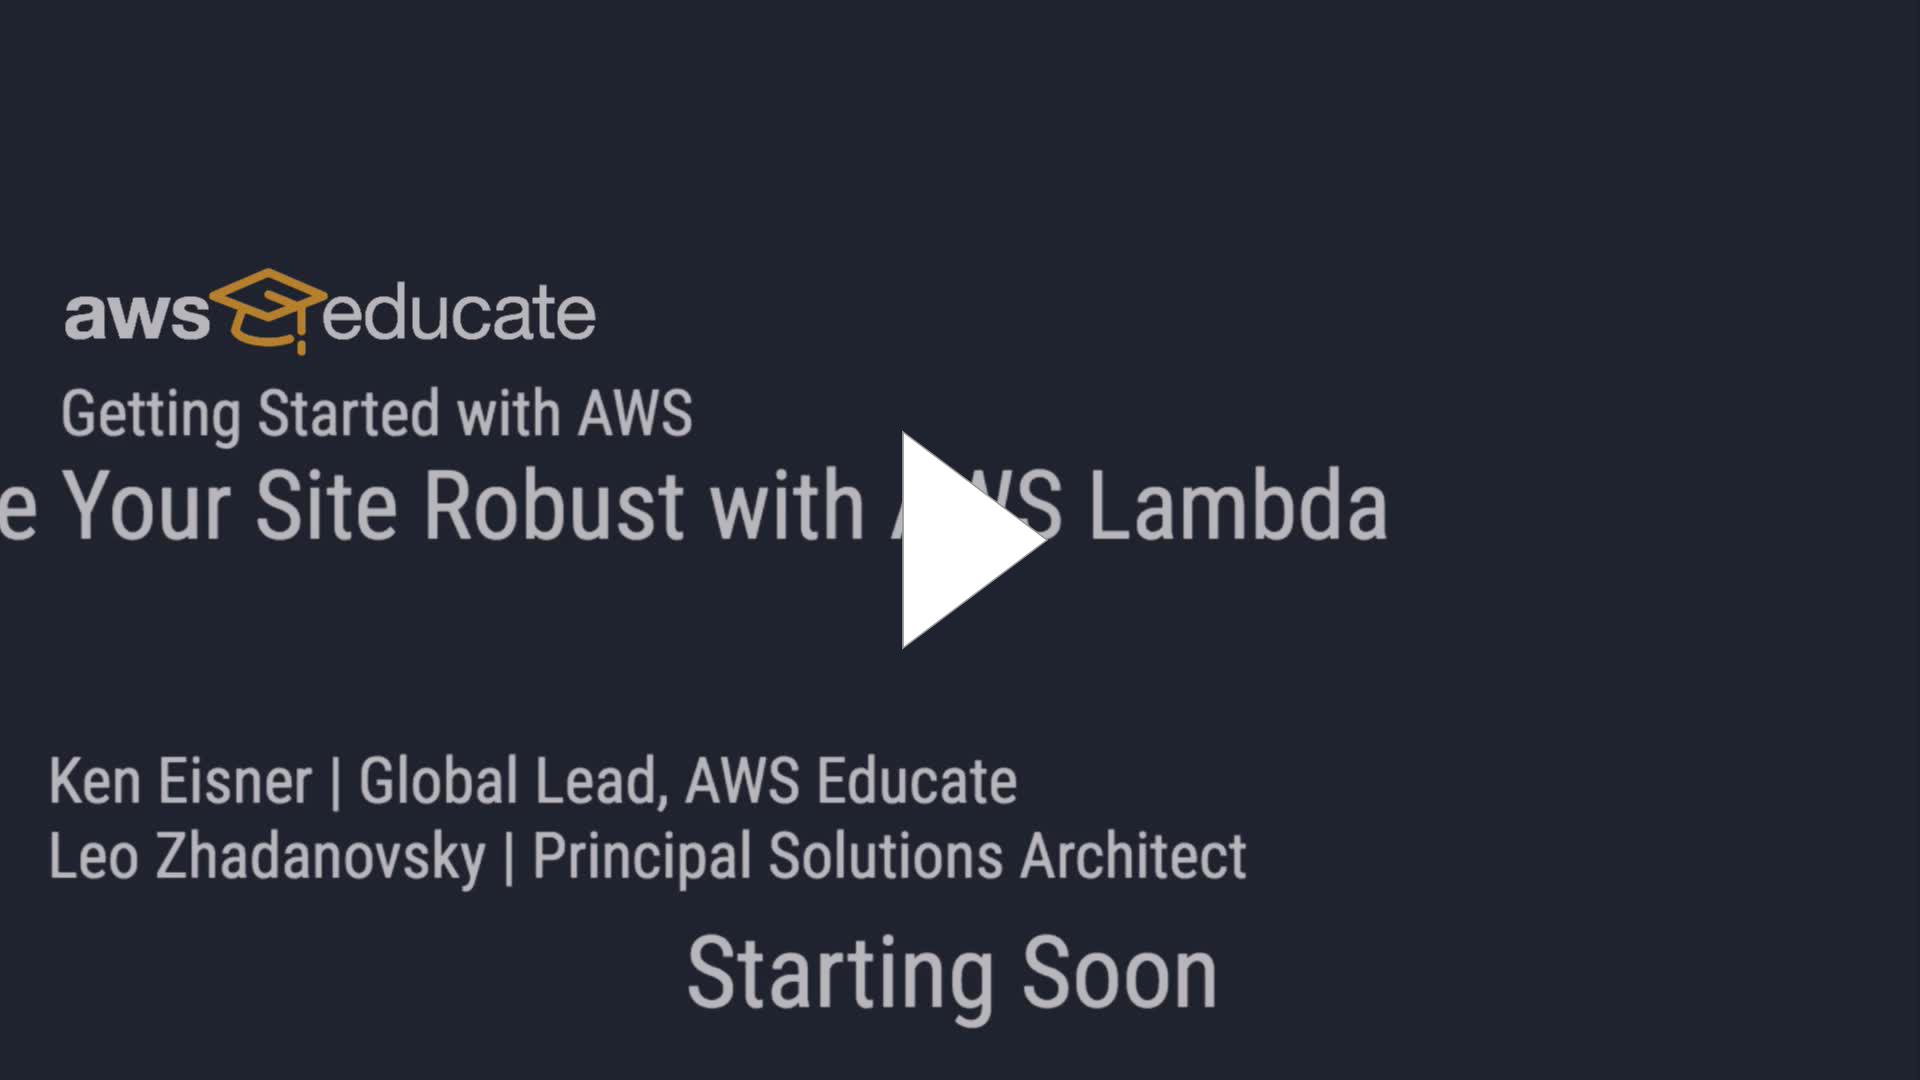 AWS - Getting Started with AWS | Make Your Site Robust with AWS